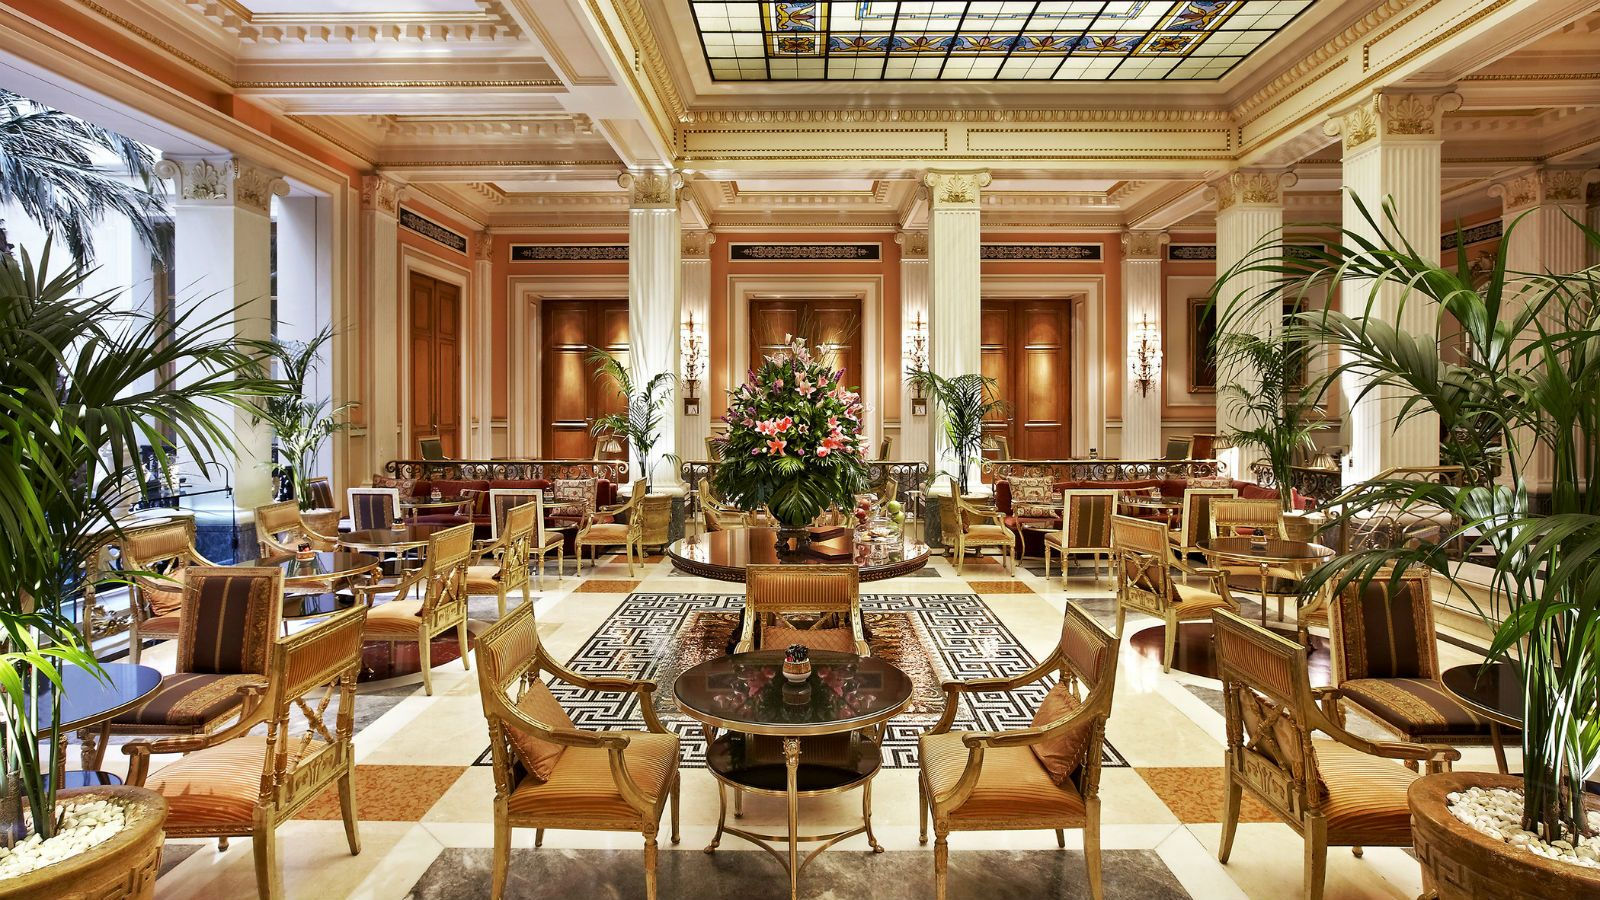 "=""The-Winter-Garden-City-Lounge-all-day-Cafe-and-light-lunch-Hotel-Grande-Bretagne-Athens""/"